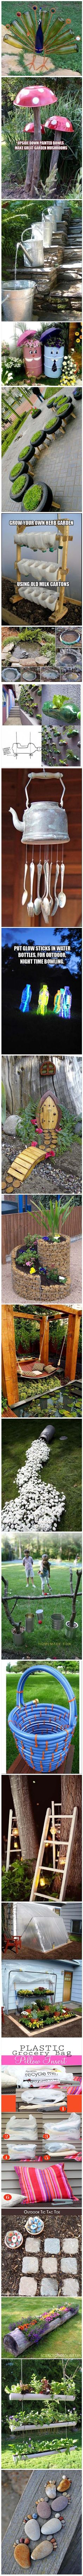 Simple Outdoor Ideas That Are Borderline Genius – 25 Pics | Mommy Has A Potty MouthMommy Has A Potty Mouth